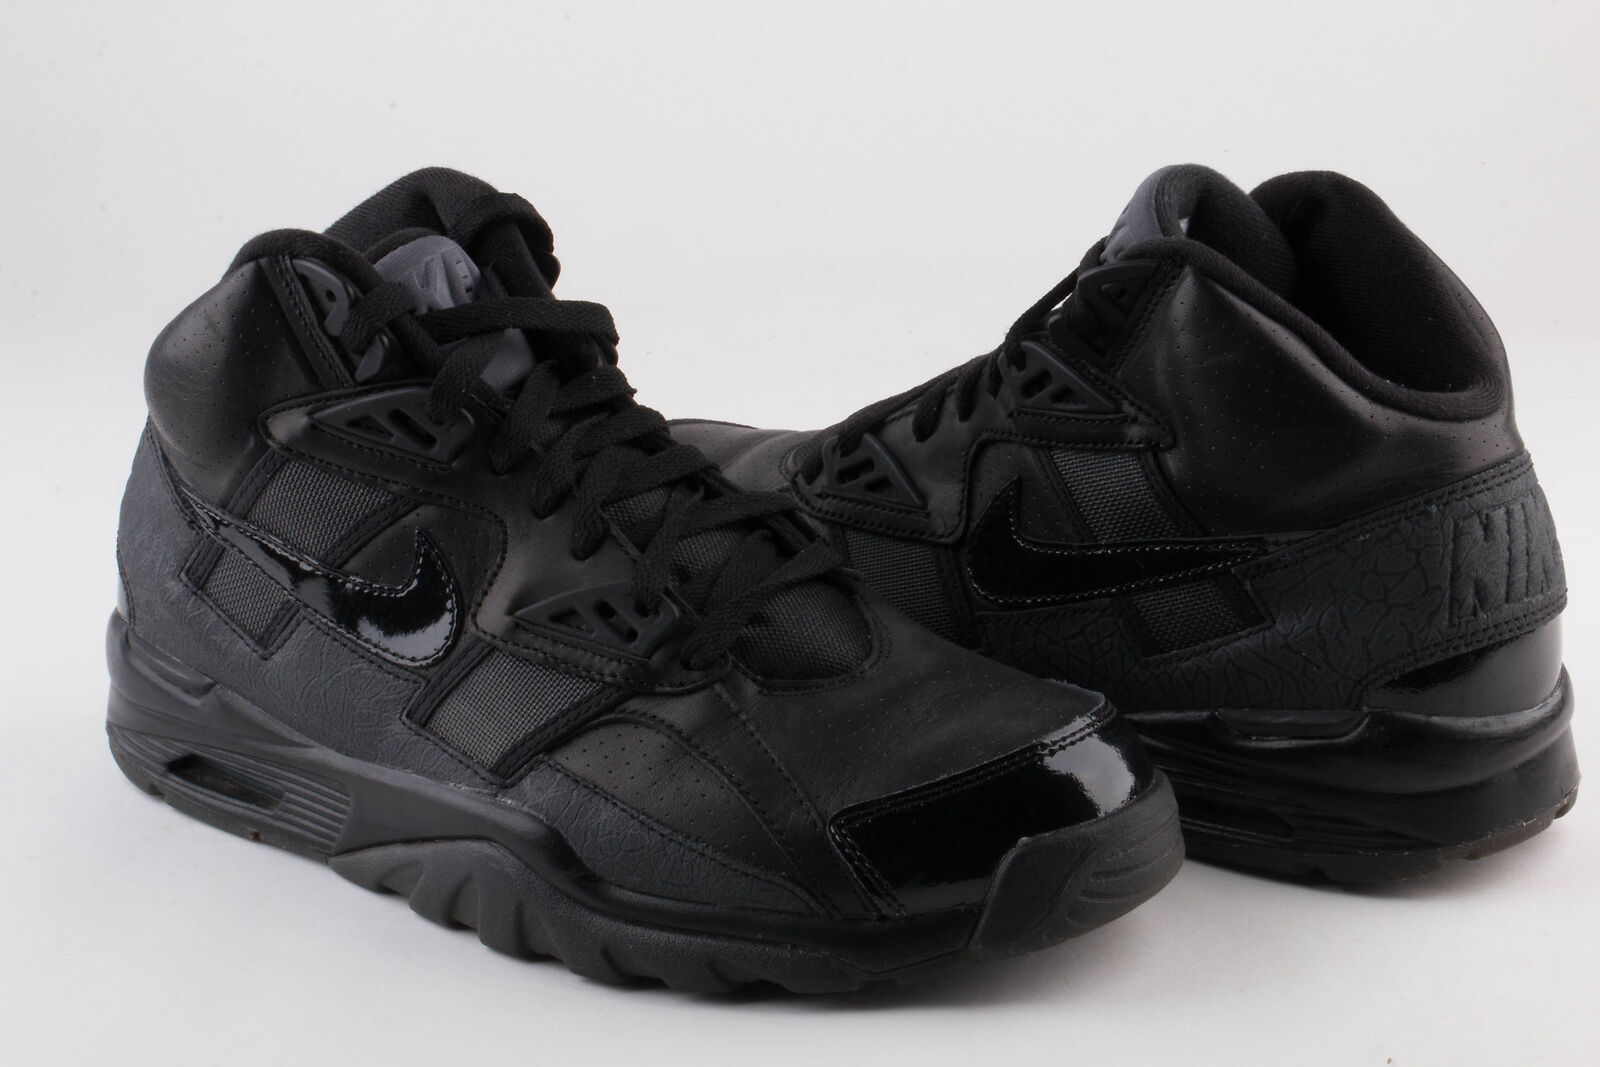 Nike Mens Air Trainer SC High QS Blk/Blk-Drk Grey 585125-007 Comfortable Casual wild